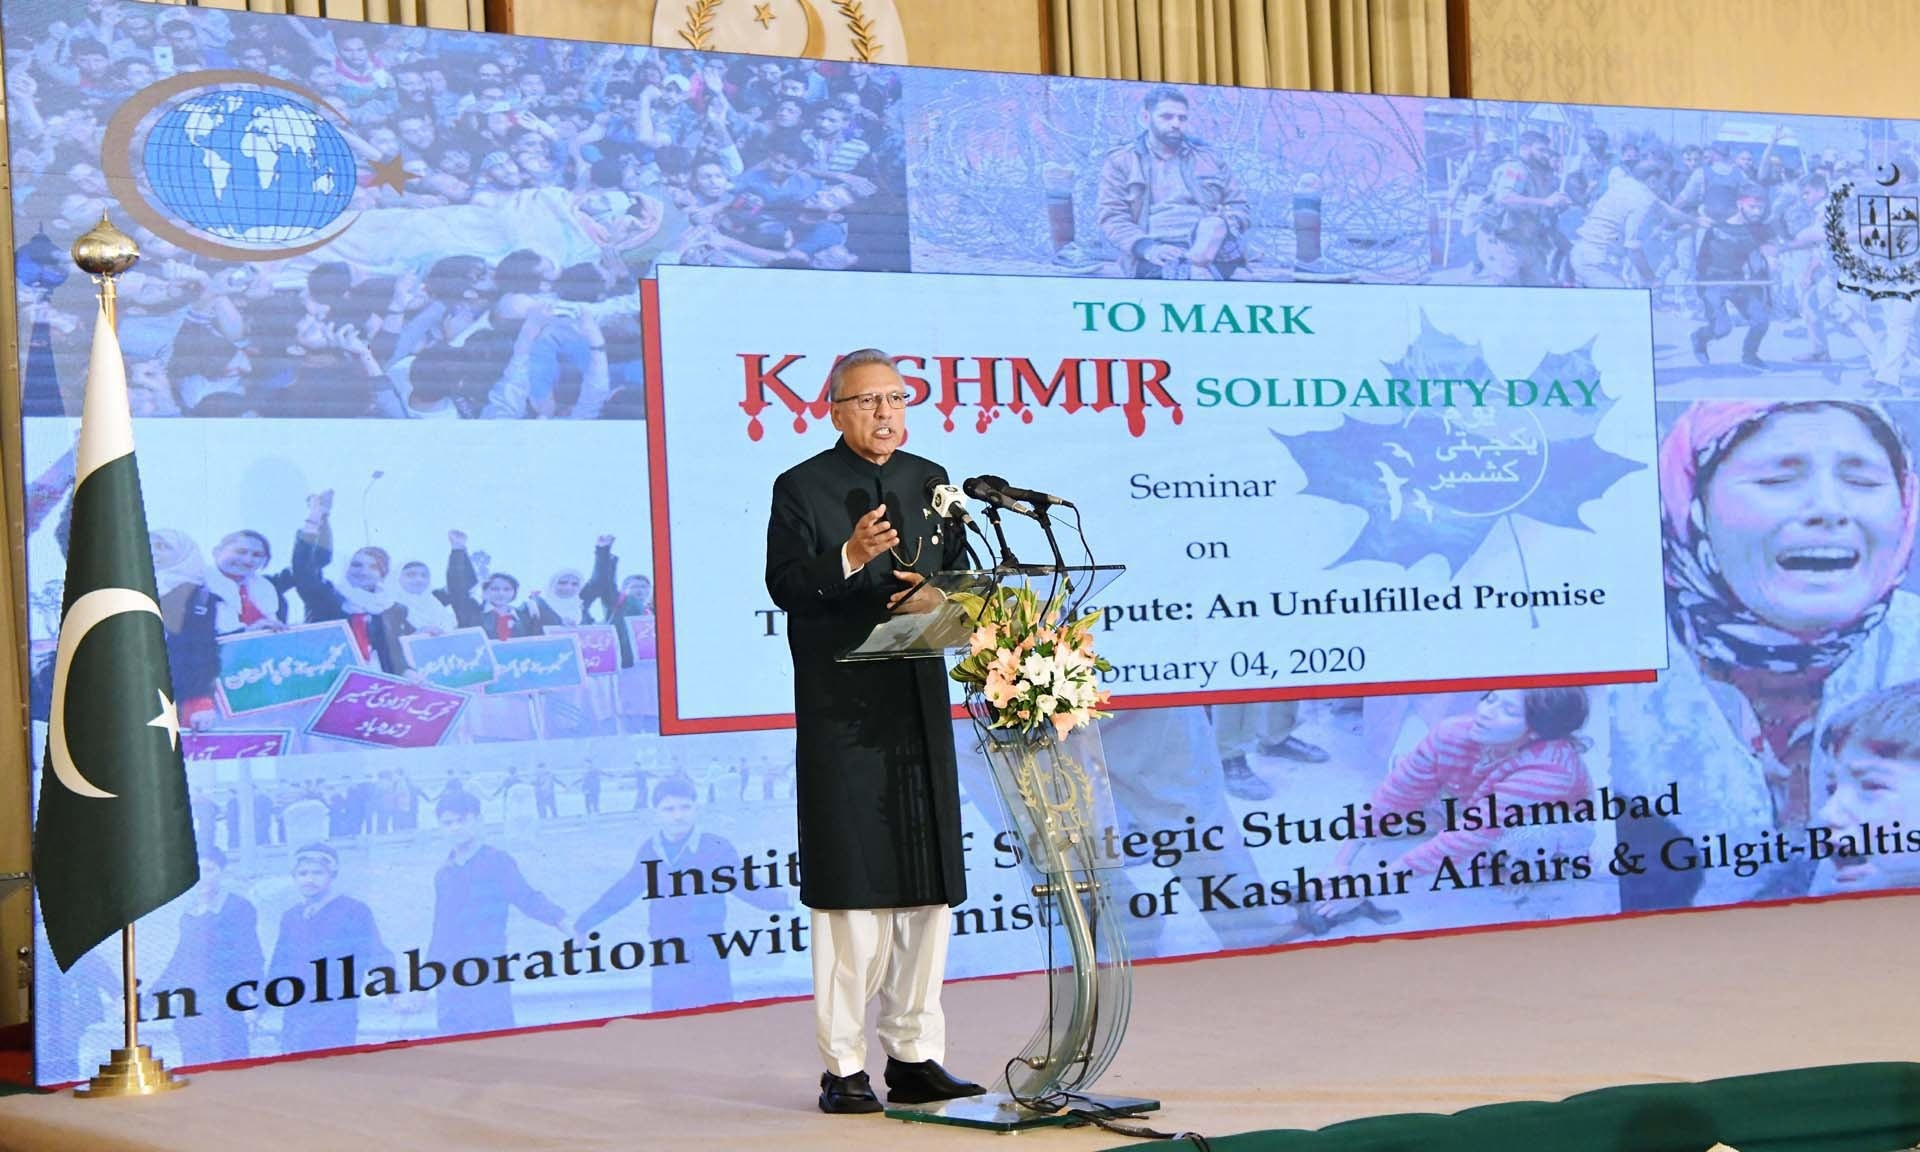 President Dr Arif Alvi addresses a seminar to observe Kashmir Solidarity Day at the Aiwan-e-Sadr in Islamabad on February 4, 2020. — PID